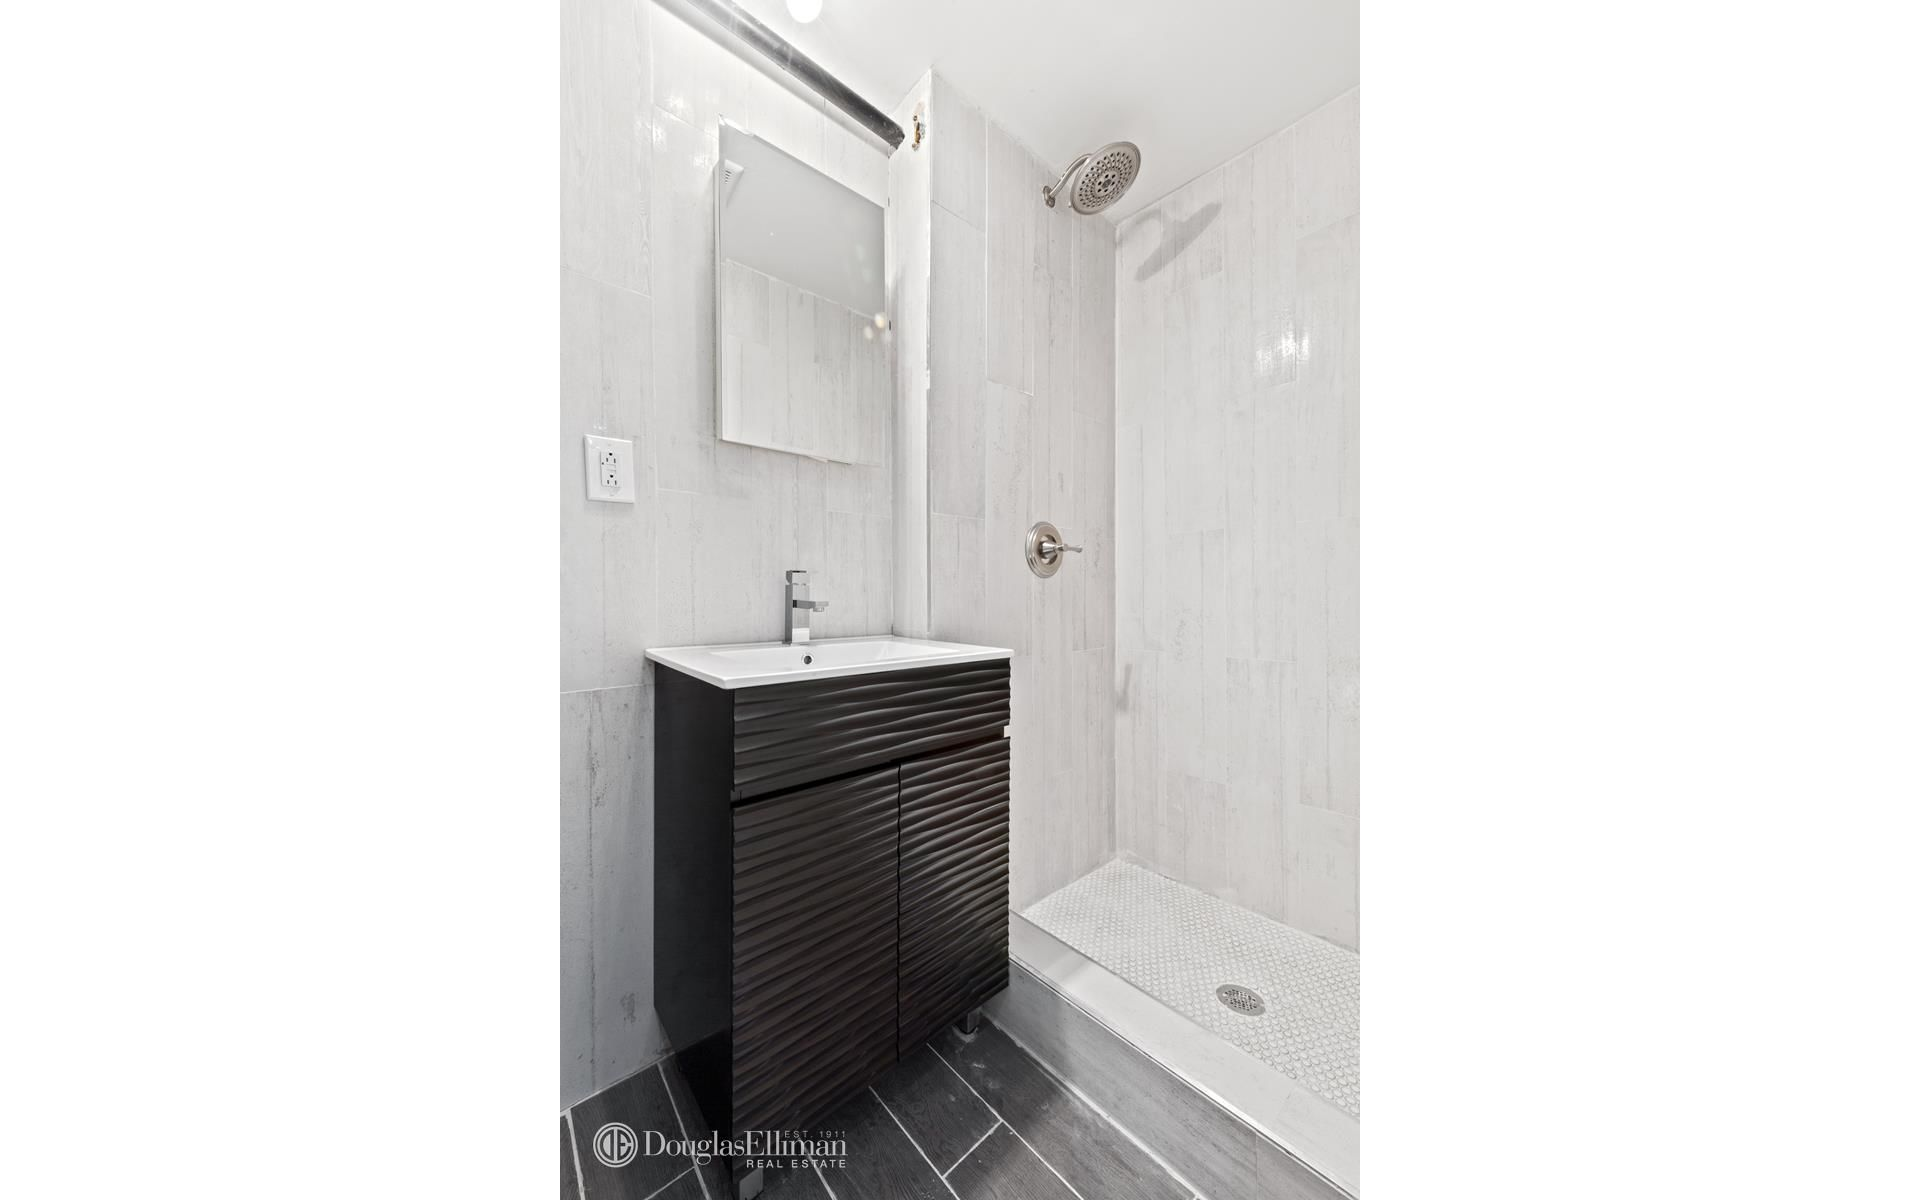 299 Vanderbilt Ave Photo 13 - ELLIMAN-2558258